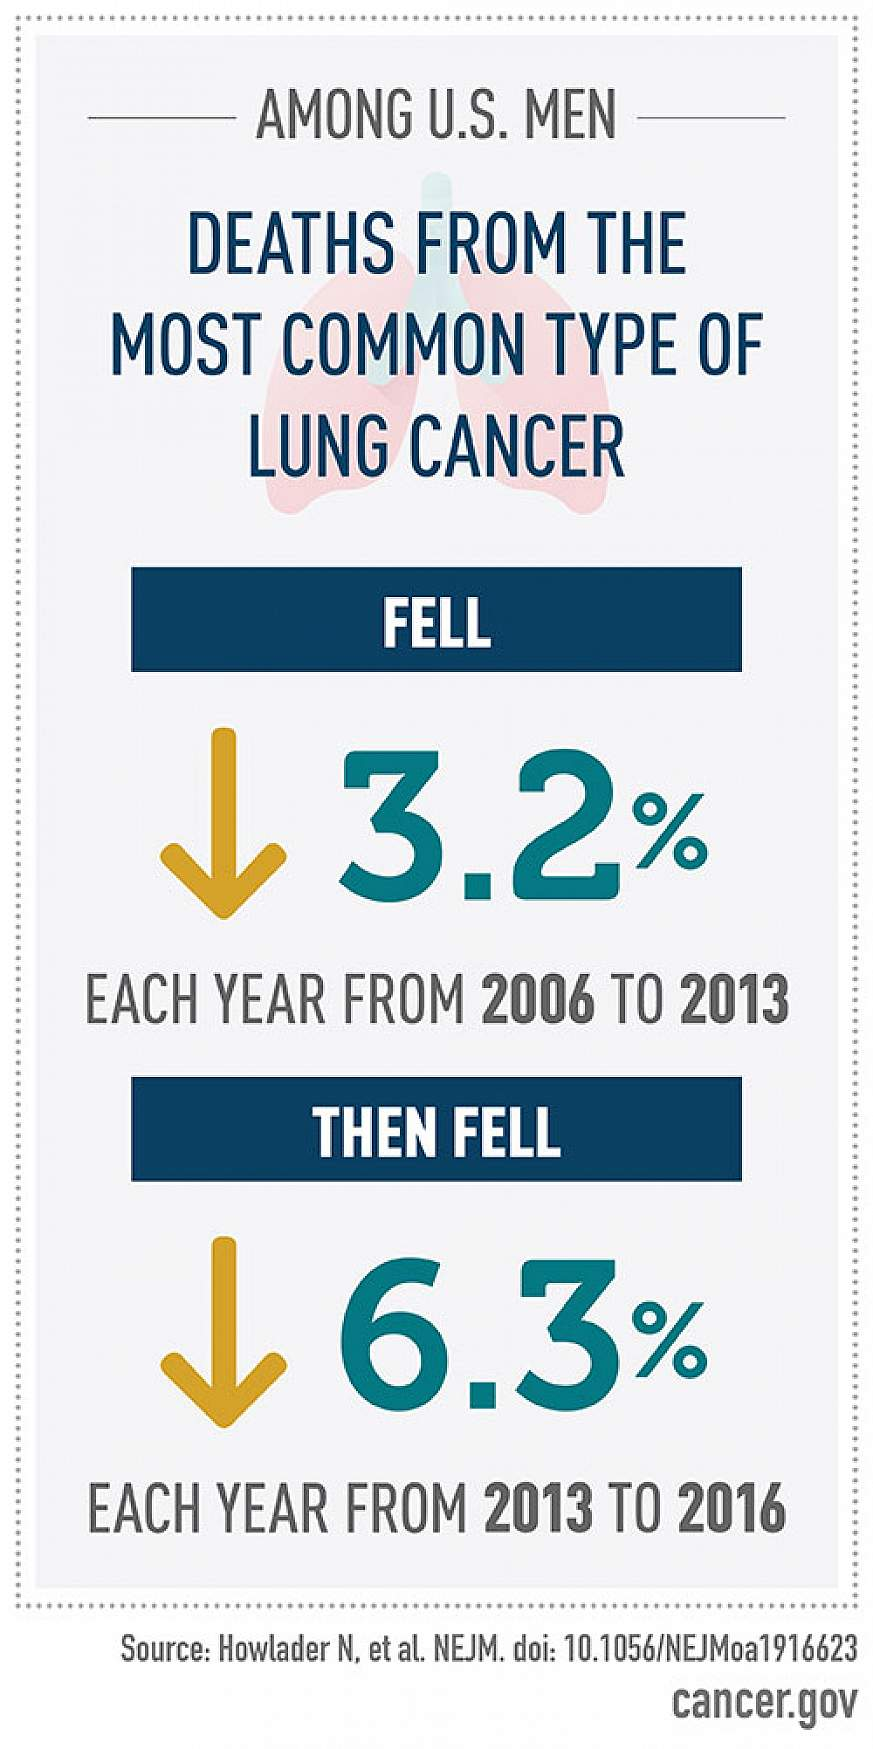 infographic reads: Among U.S. Men deaths from the most common type of lung cancer fell 3.2% each year from 2006 to 2013 then fell 6.3% each year from 2013 to 2016.